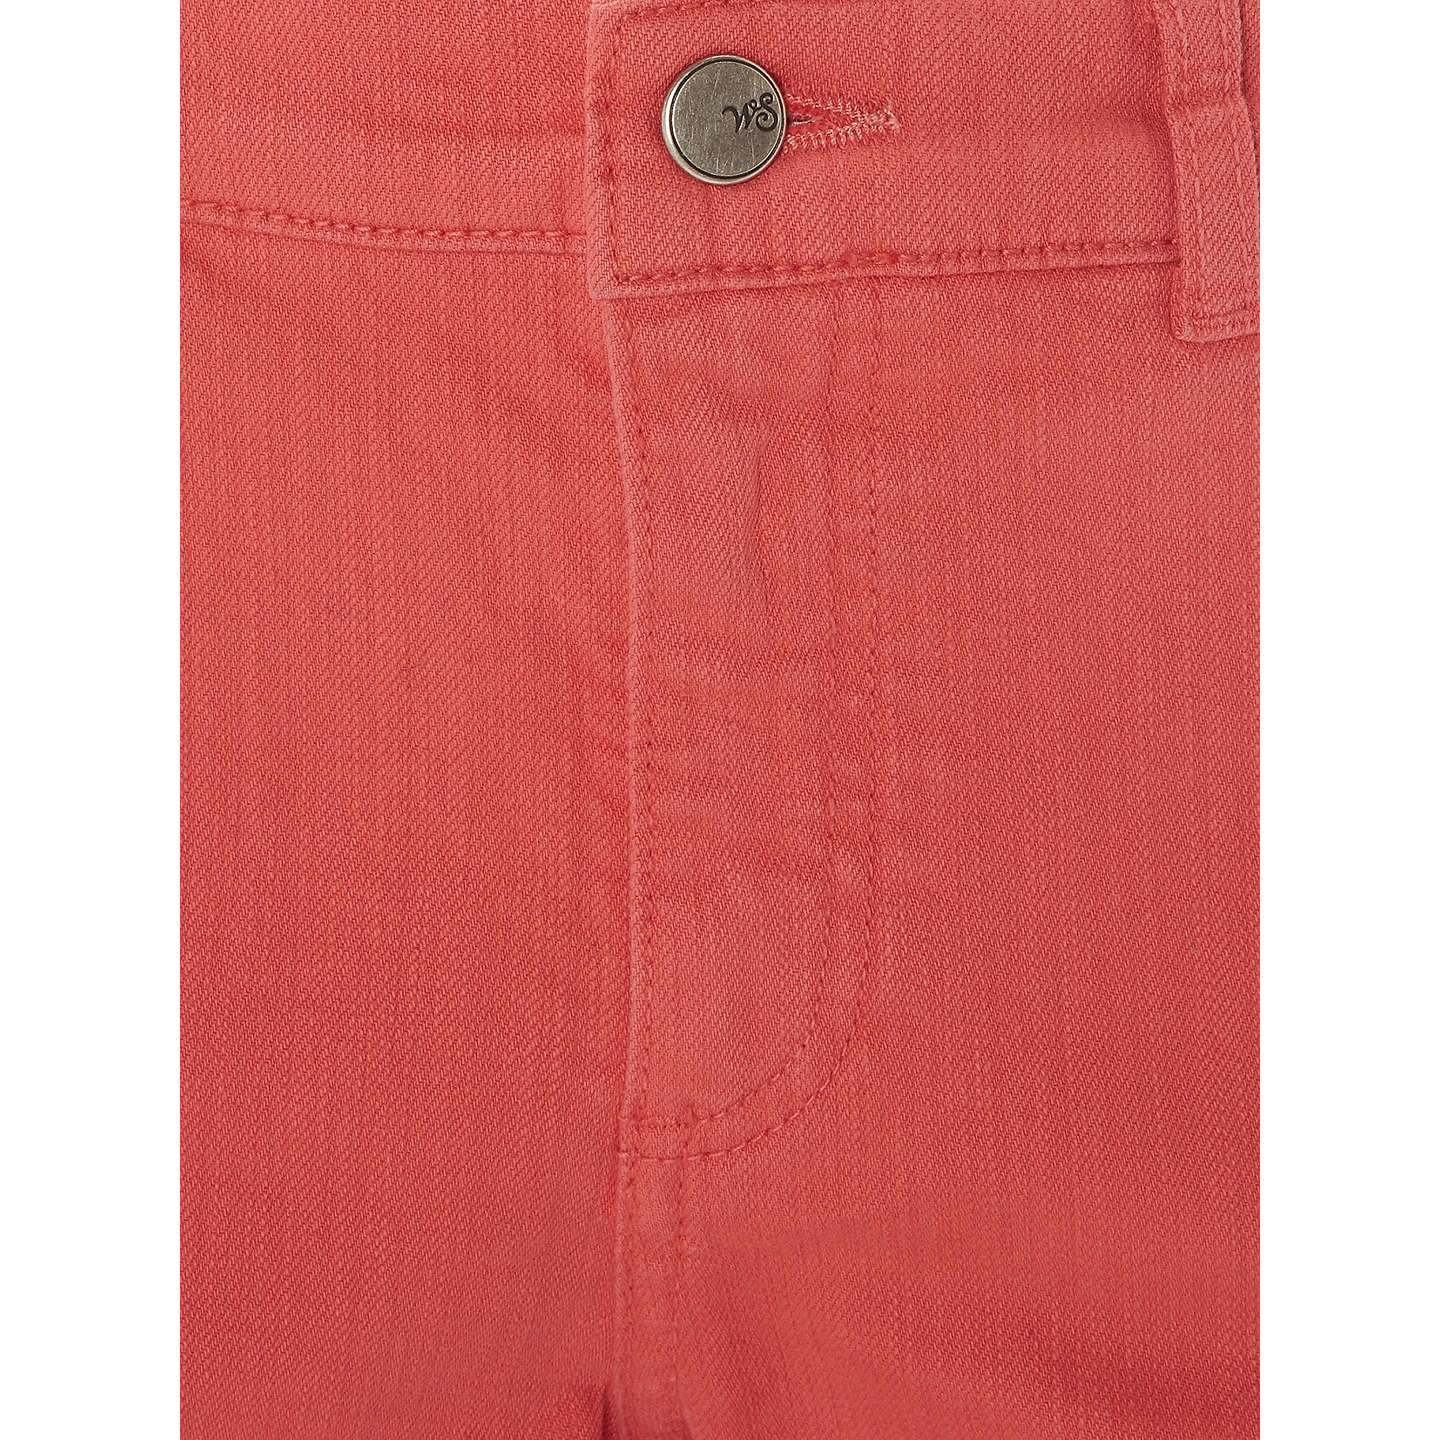 BuyWhite Stuff Sally Straight Crop Jeans, Orange, 10 Online at johnlewis.com